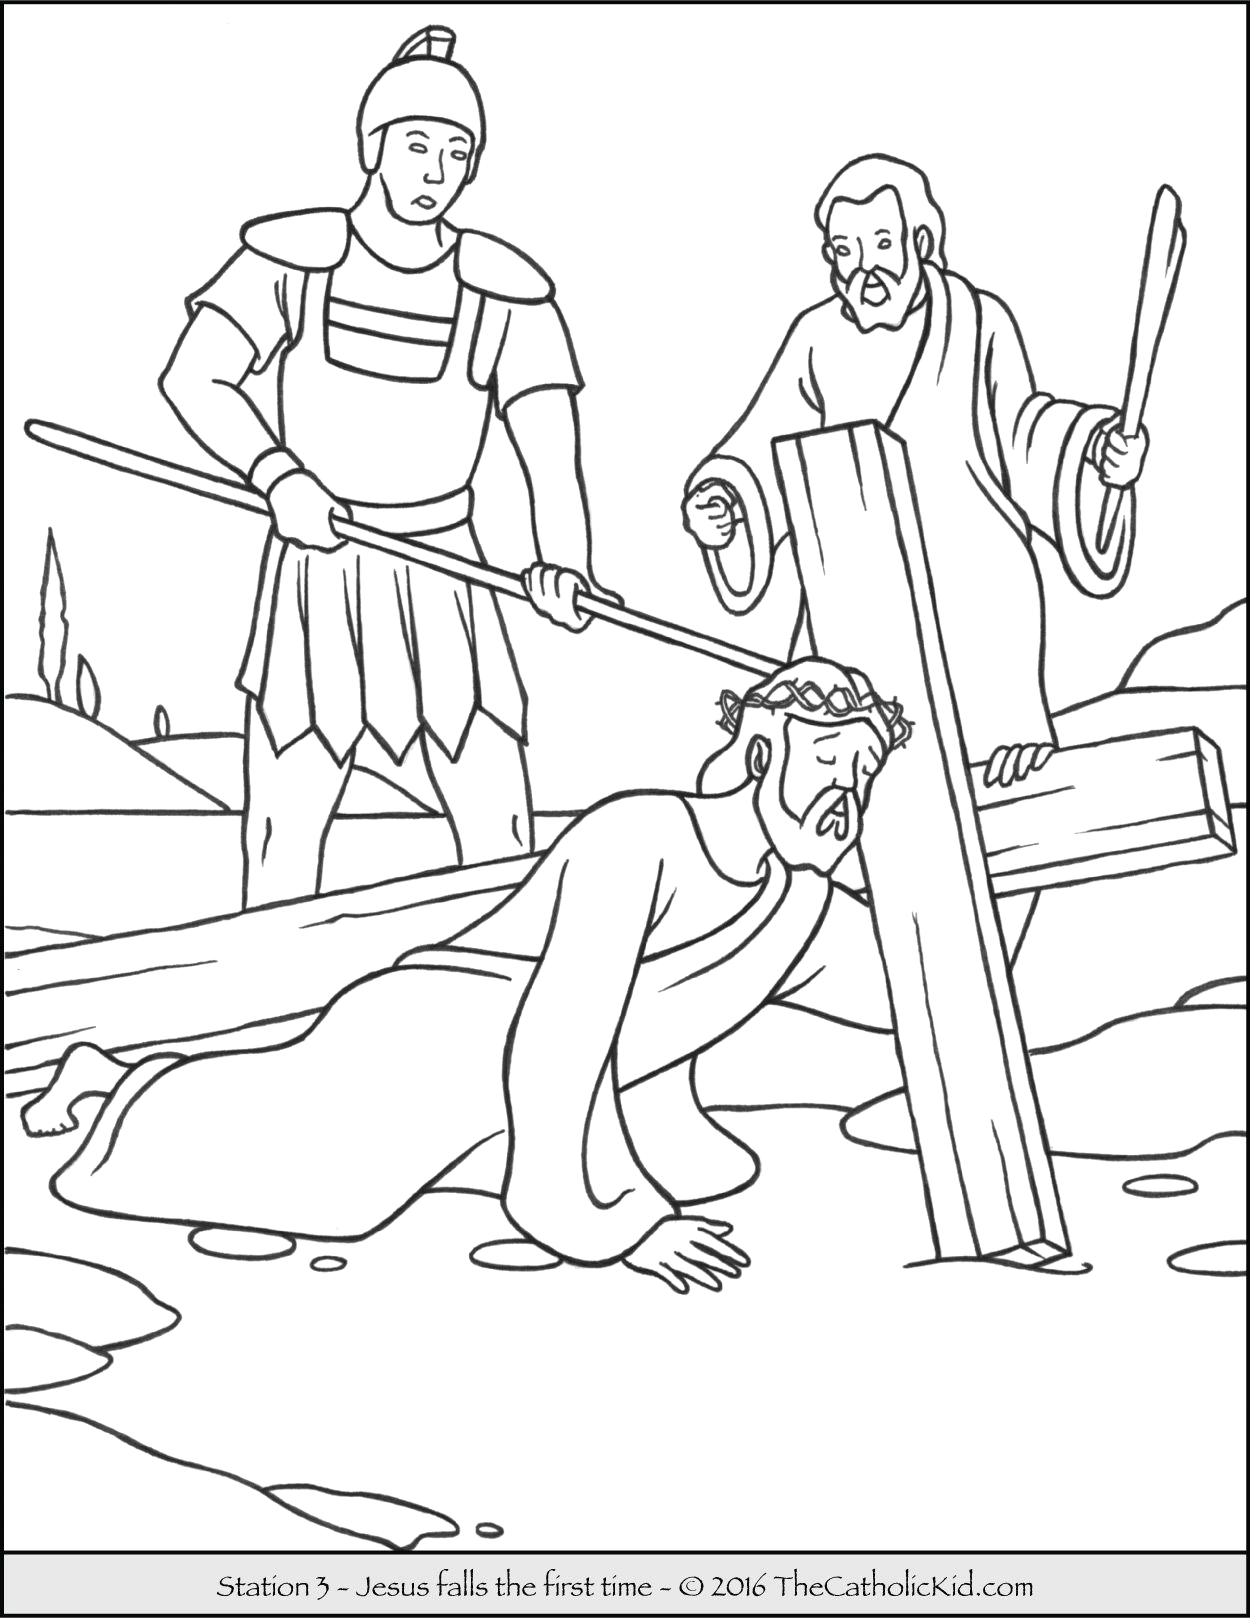 Stations Of the Cross Coloring Pages for Preschoolers Stations the Cross Coloring Page Coloring Home